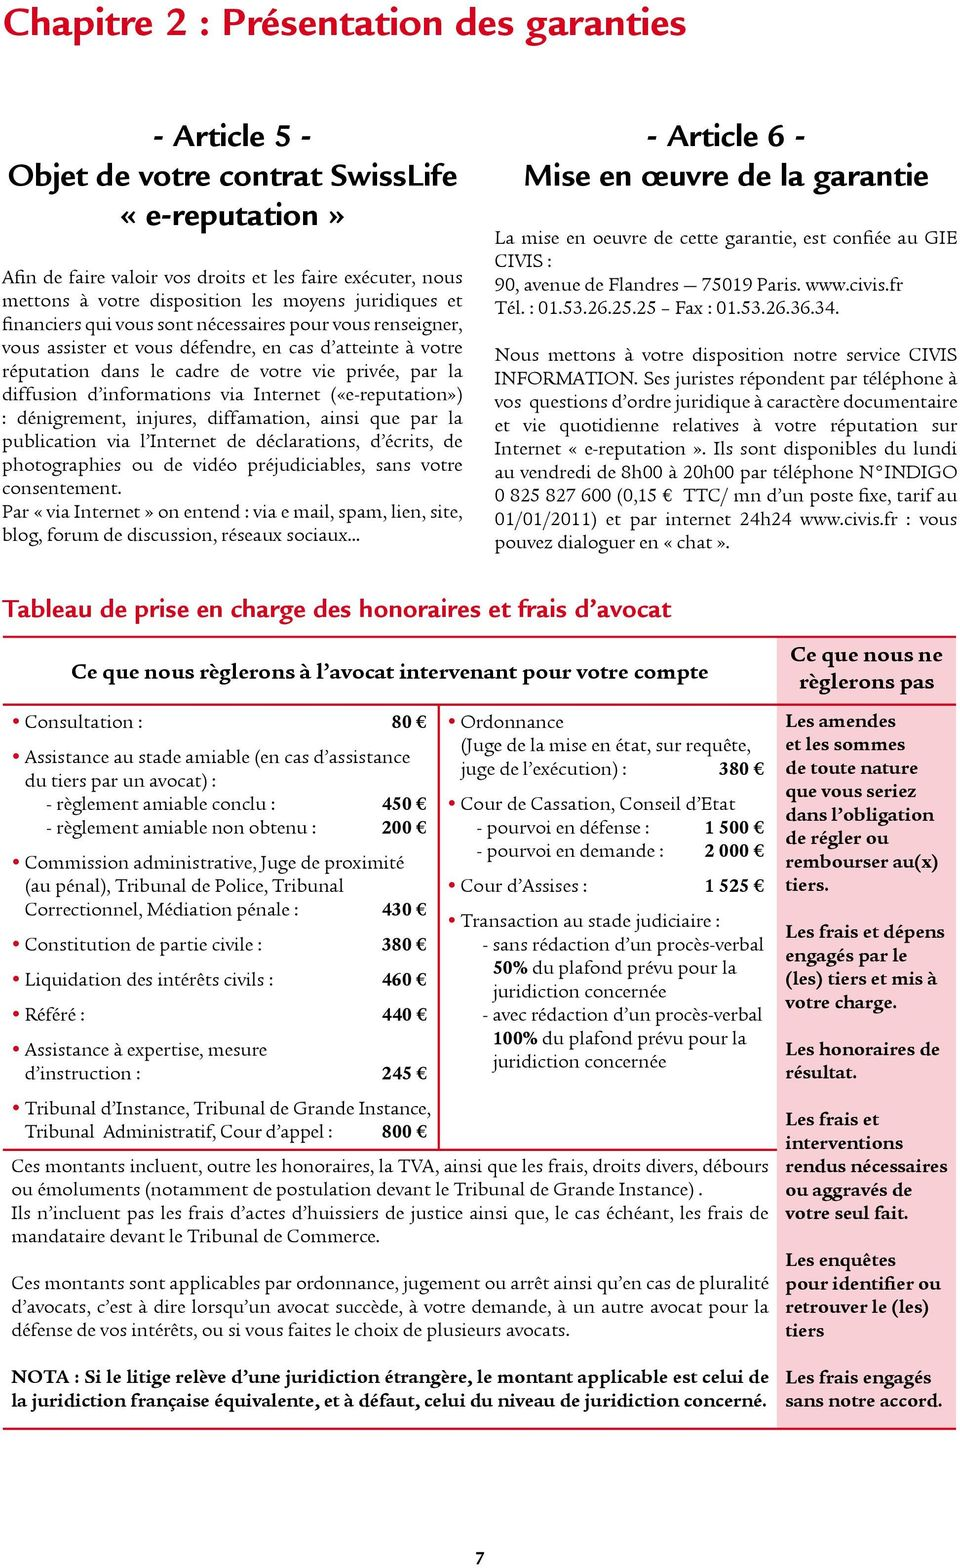 diffusion d informations via Internet («e-reputation») : dénigrement, injures, diffamation, ainsi que par la publication via l Internet de déclarations, d écrits, de photographies ou de vidéo